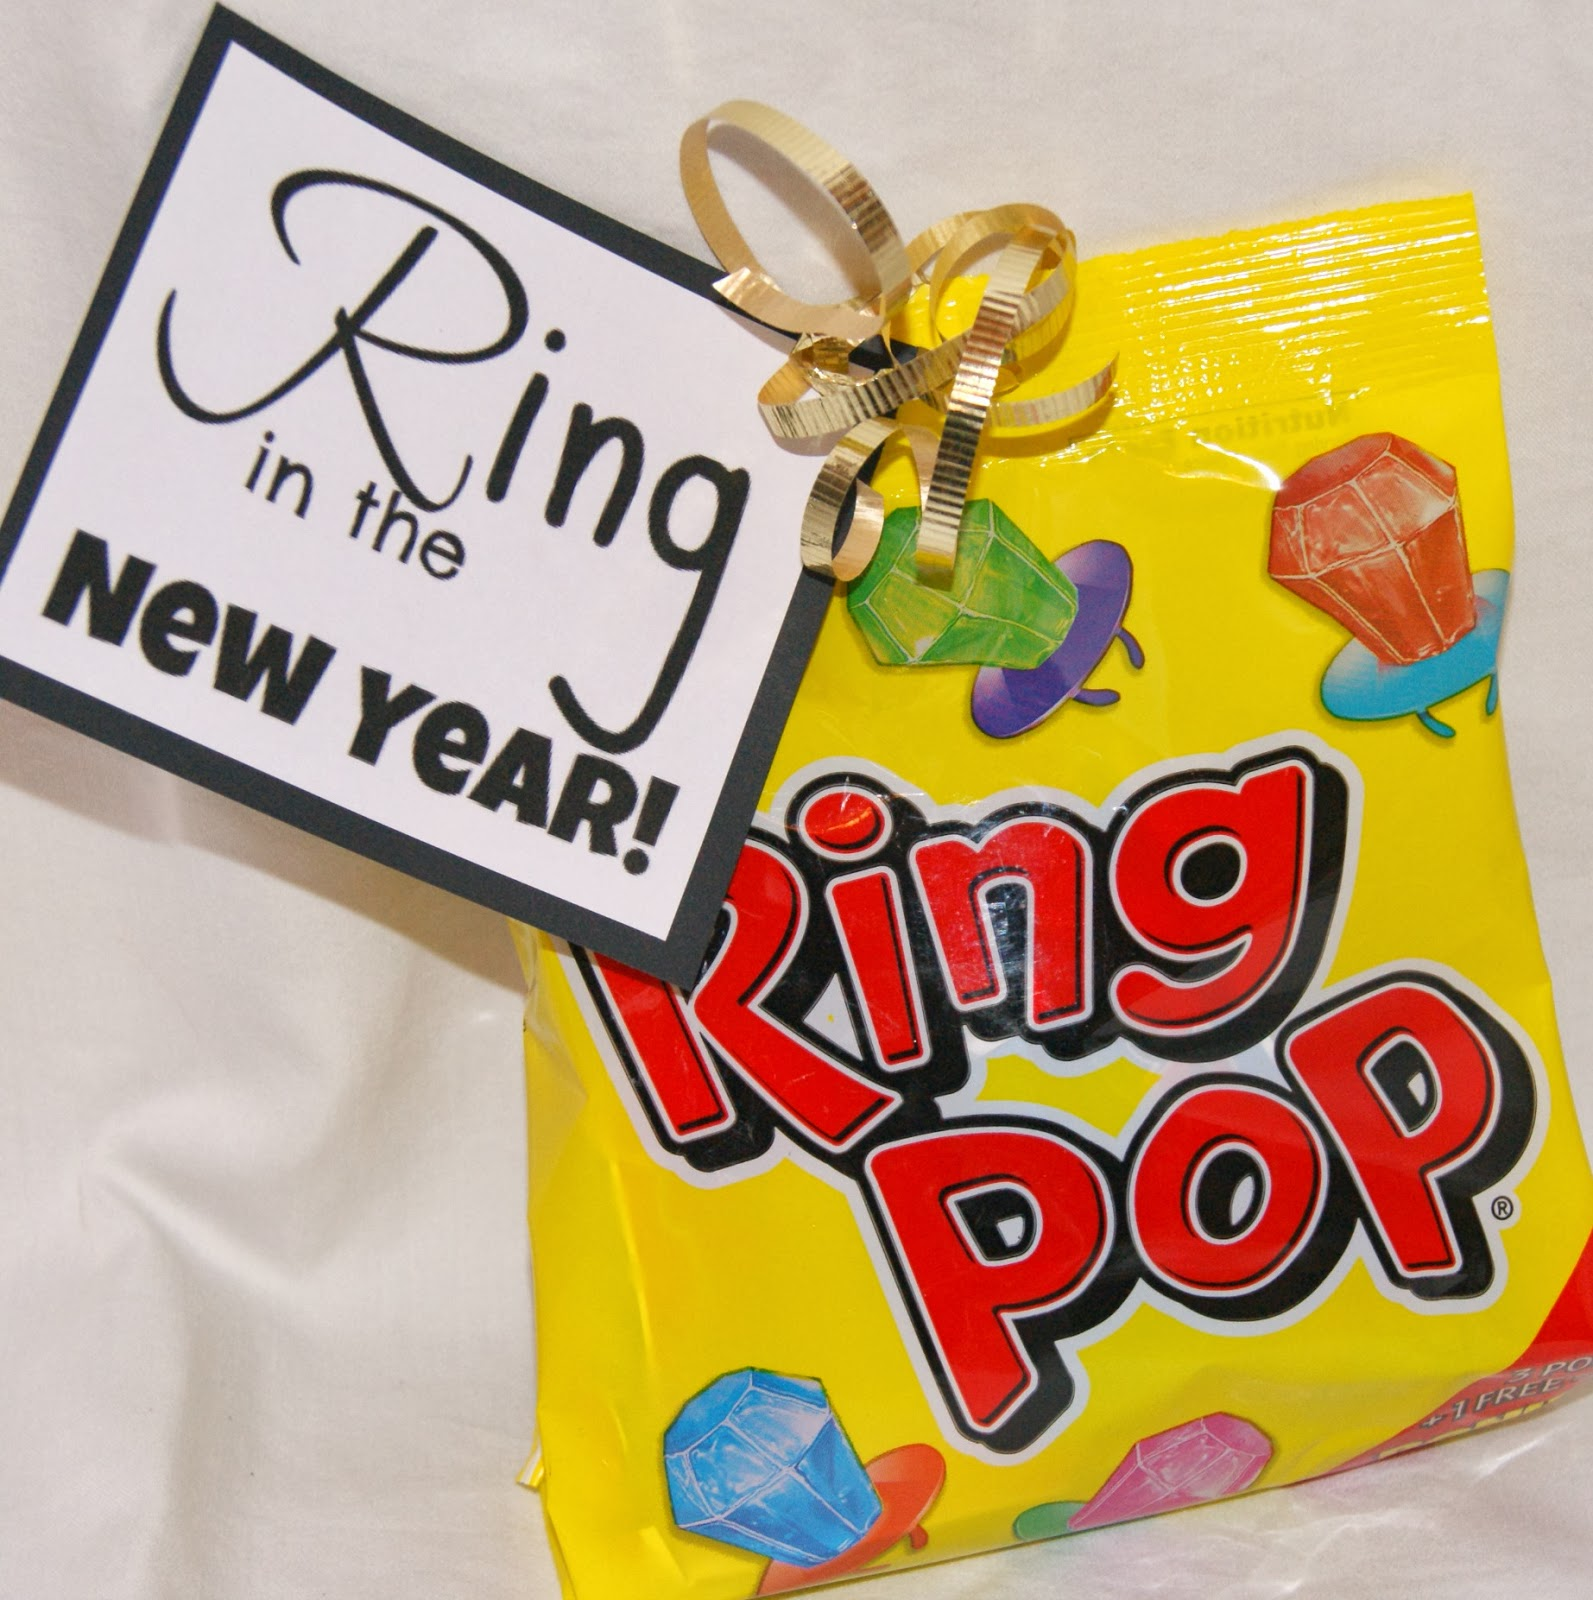 michelle paige blogs: New Year's Eve Party Puns